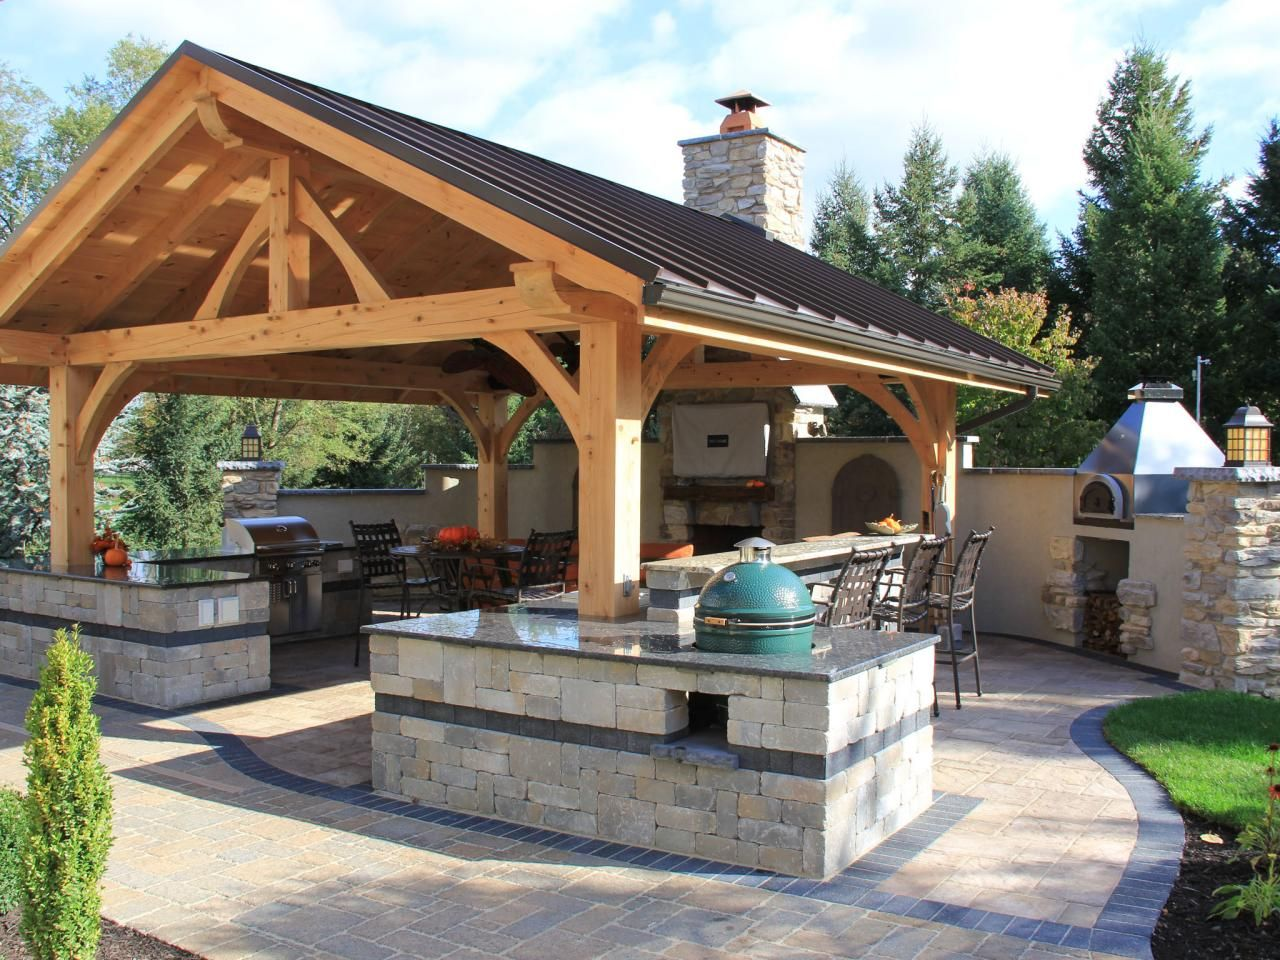 Rustic Covered Outdoor Kitchen With Bar Hgtv Outdoor Spaces Pinterest Hgtv Bar And Kitchens